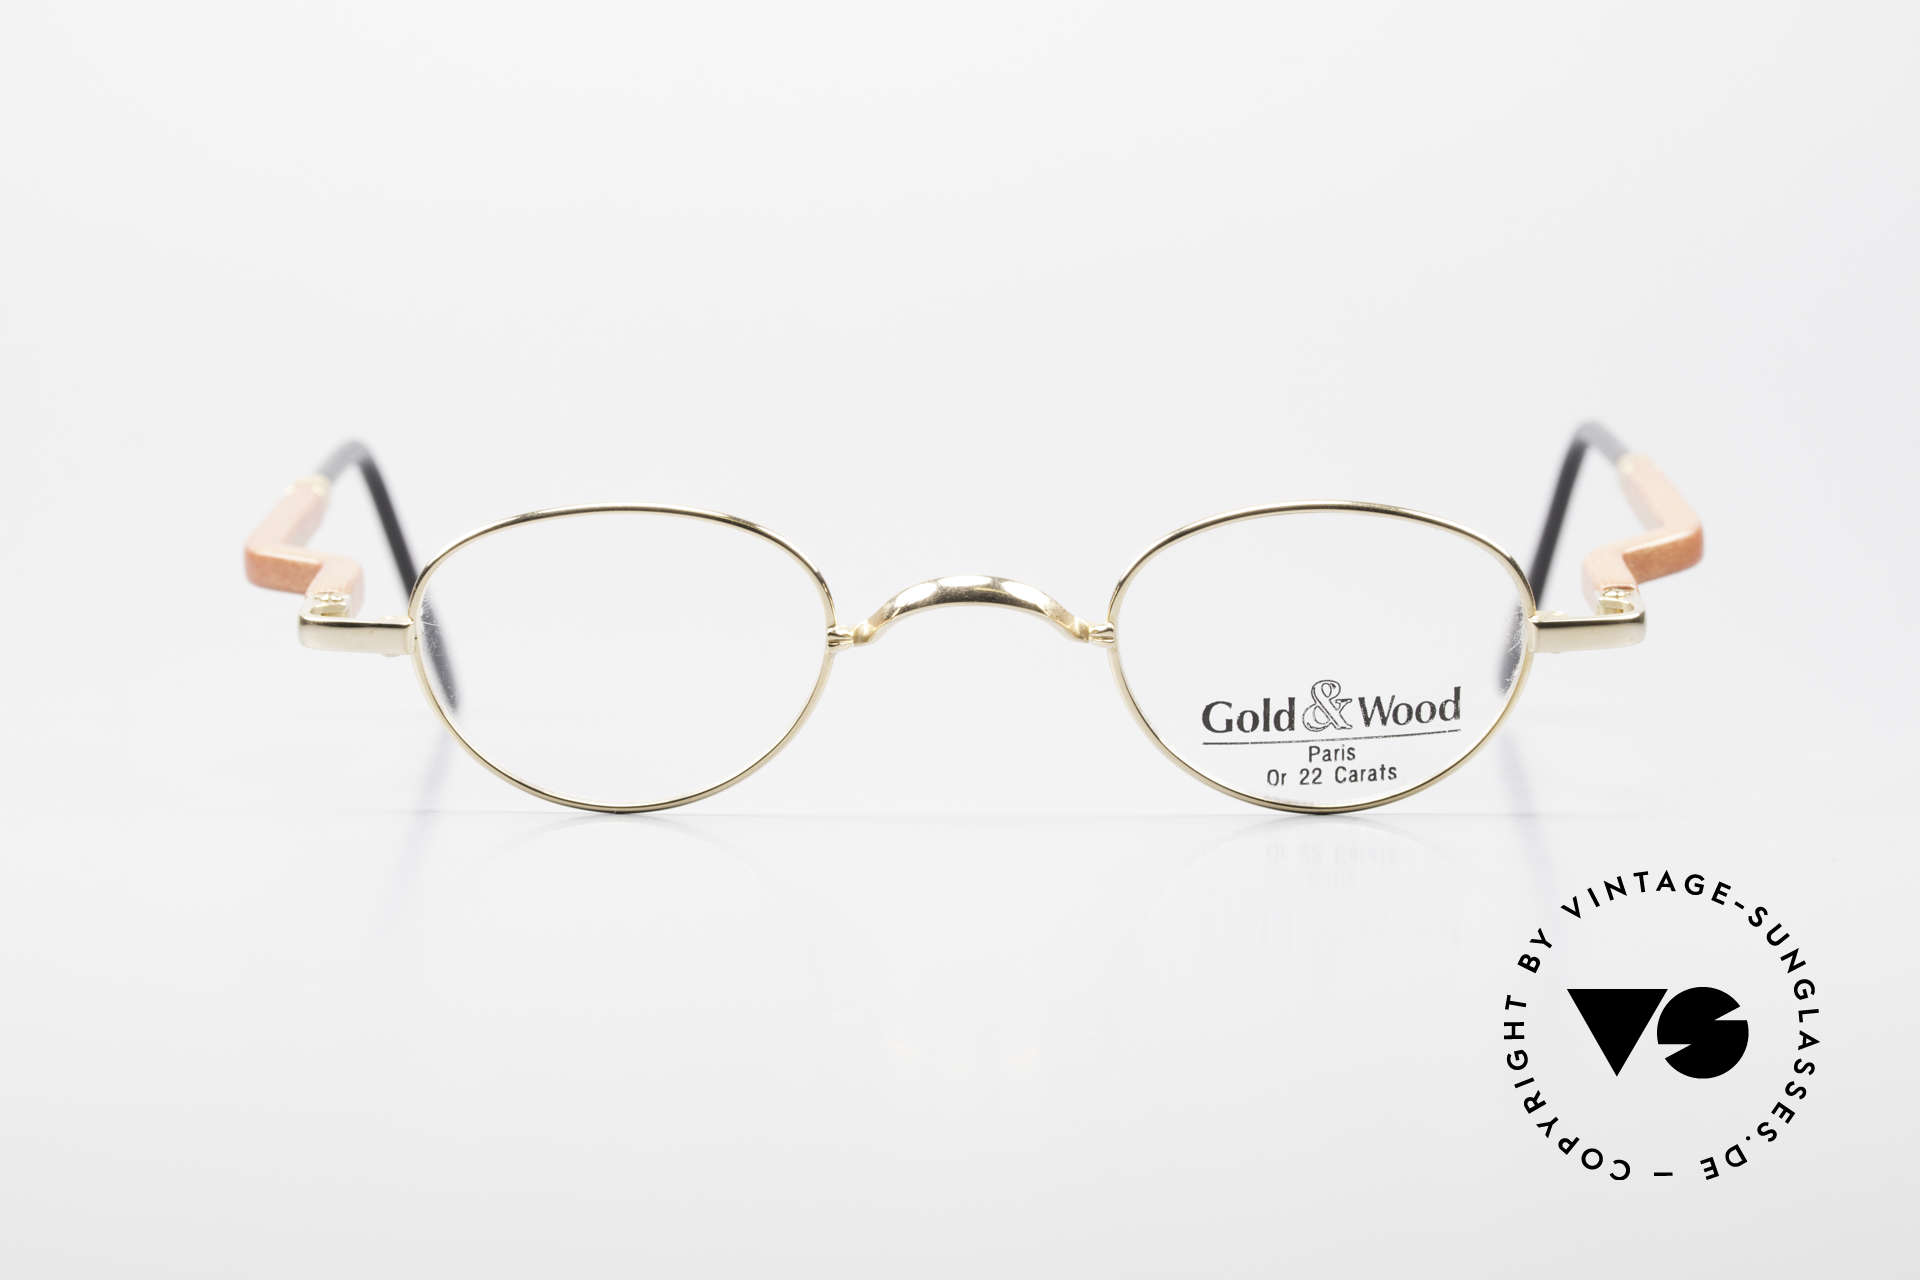 Gold & Wood 326 Wood Frame 22ct Gold Plated, oval 90's wooden eyeglasses, 22ct GOLD-PLATED, Made for Men and Women